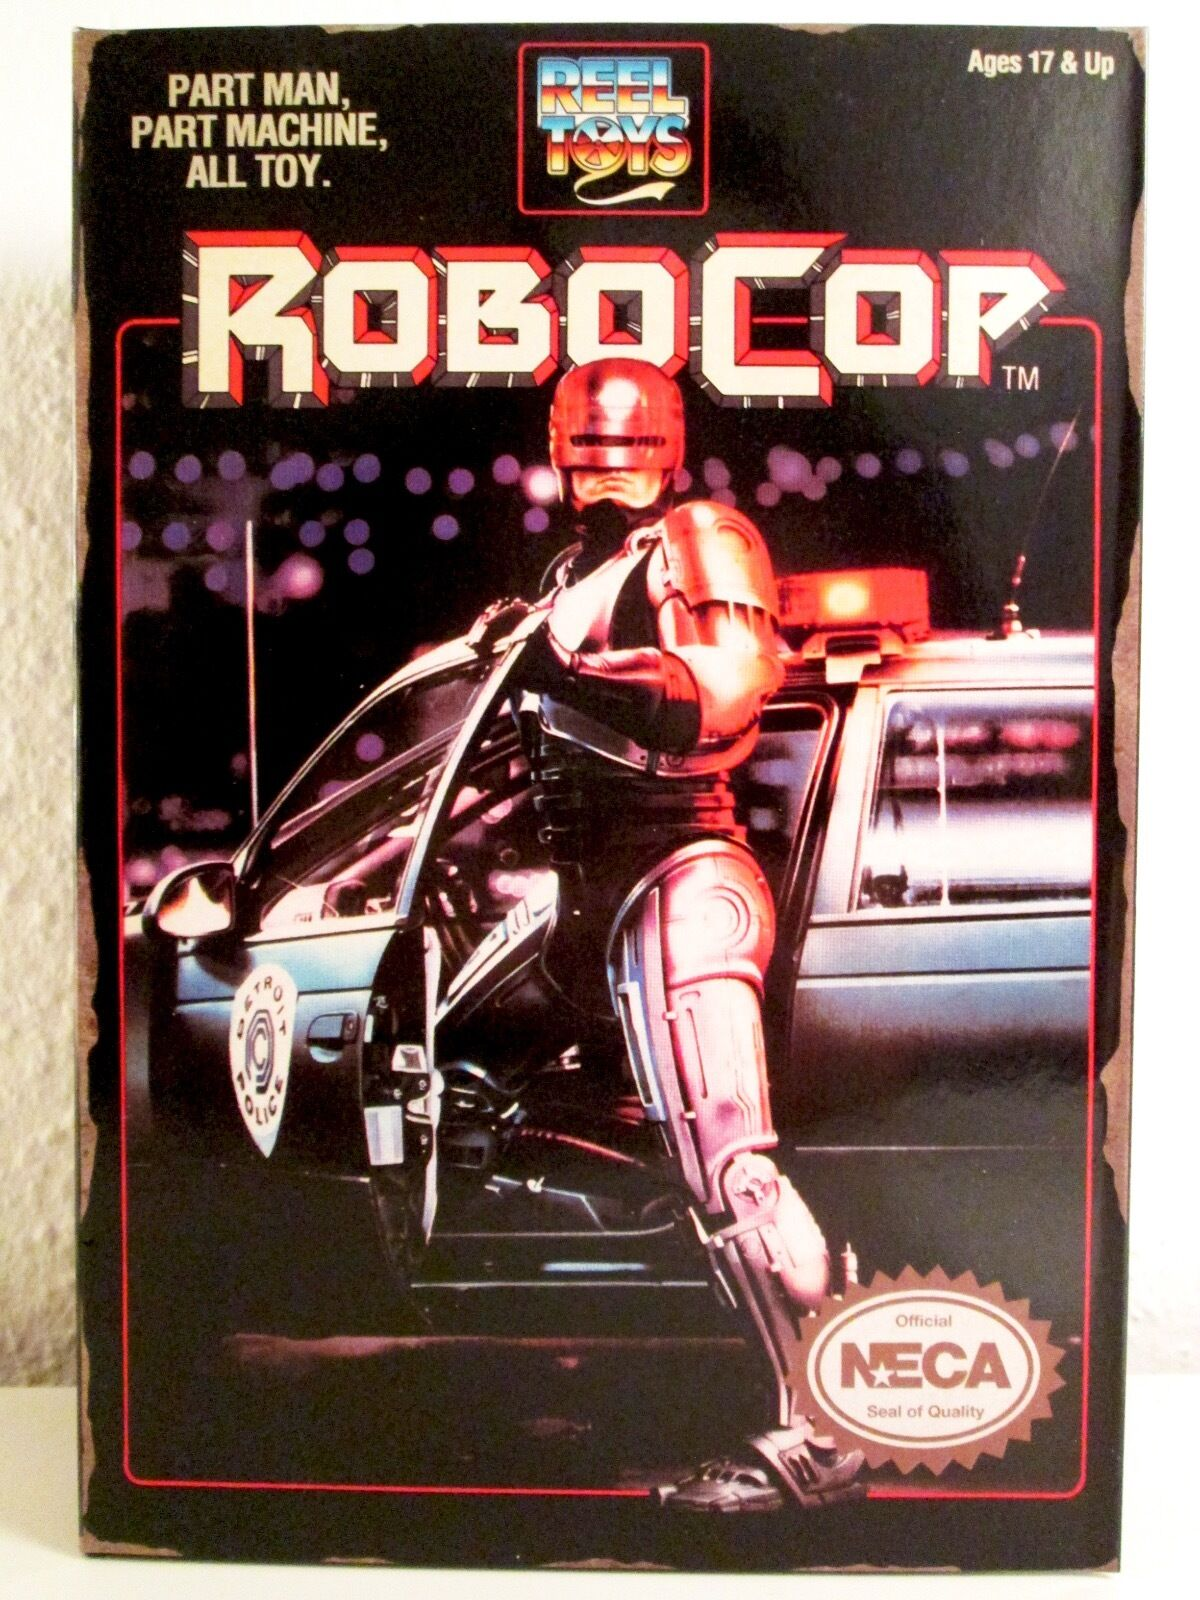 NECA ROBOCOP Video Game Appearance NUOVO NEW NIB IN DISPLAY BOX REEL TOYS